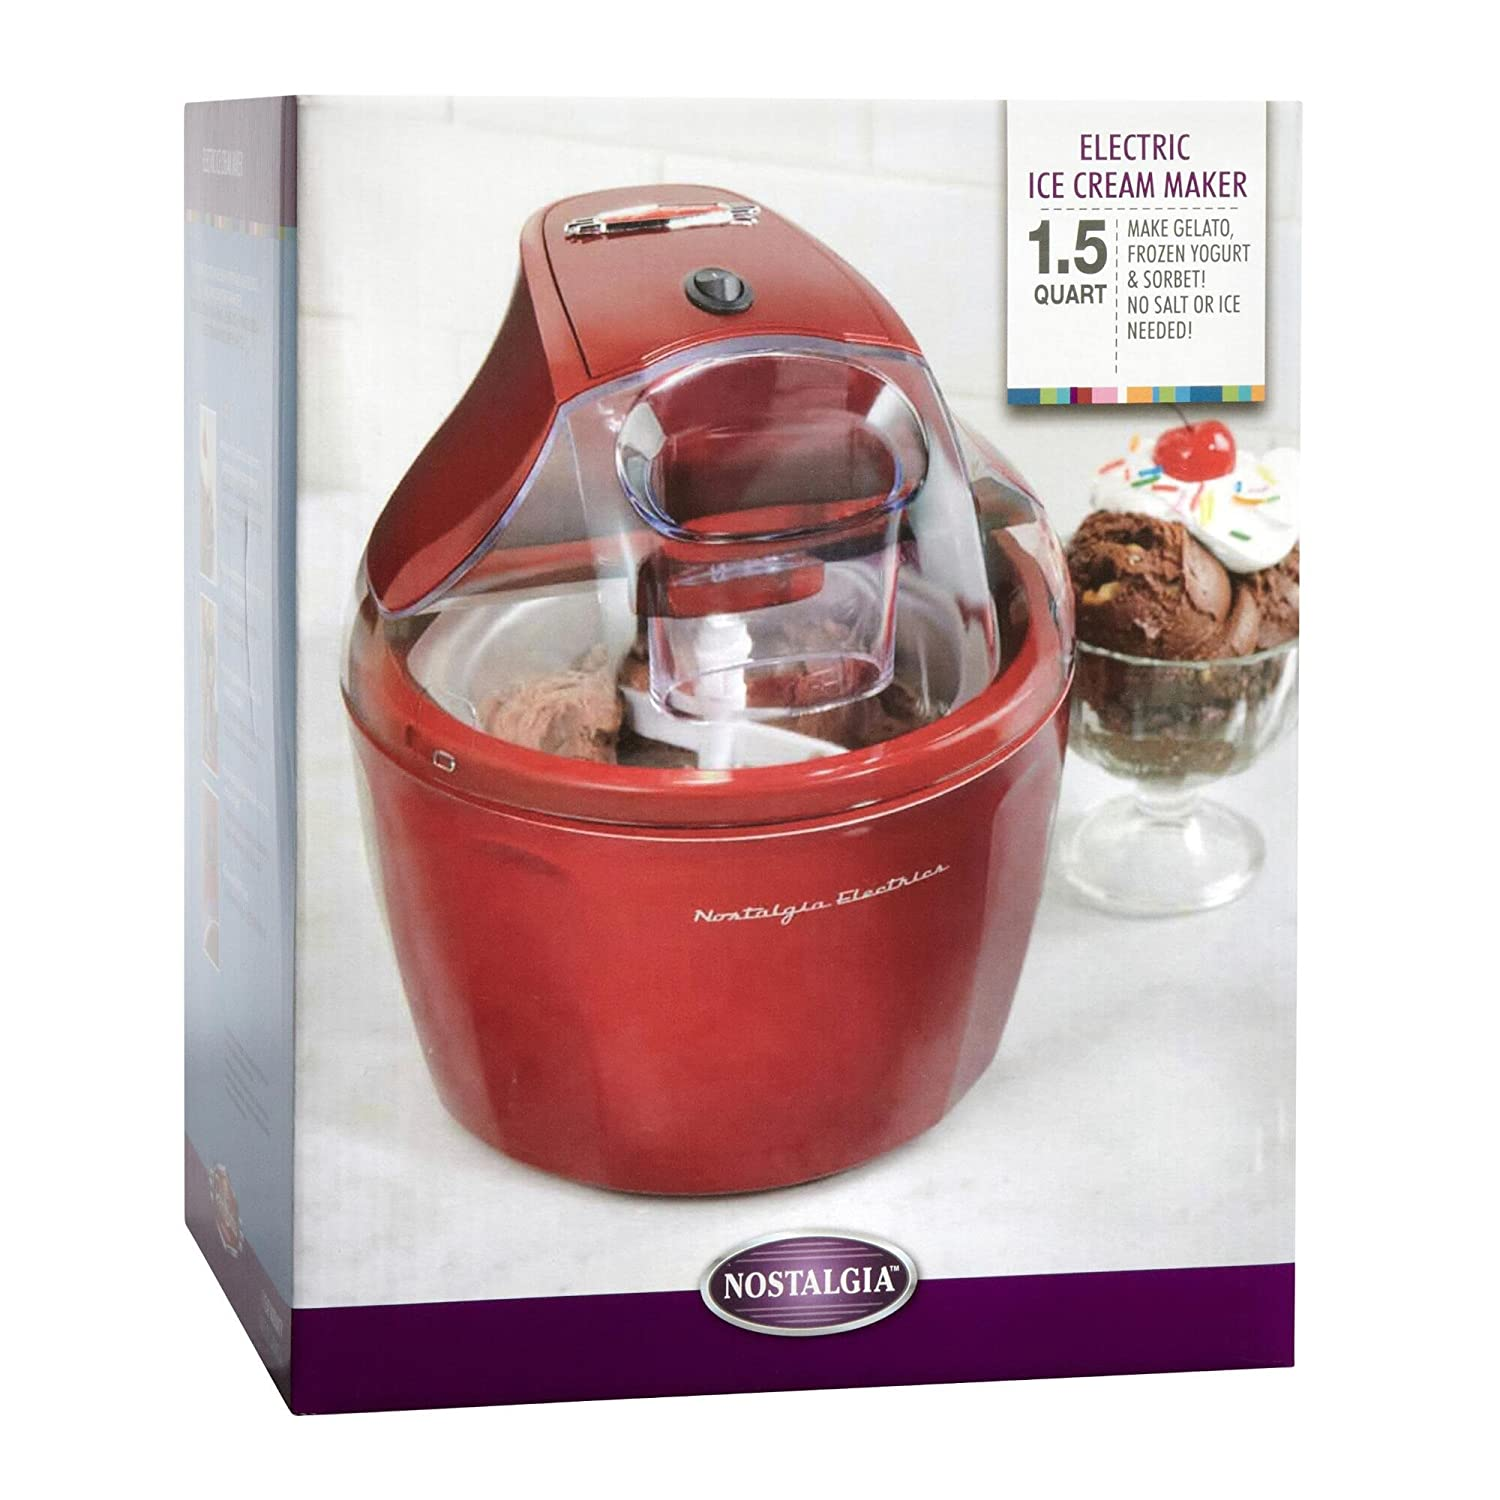 Charming Electric Ice Cream Maker Part - 2: Amazon.com: Nostalgia Ice Cream Maker | Stainless Steel 1.5 Quart Ice Cream  Makers, Red: Kitchen U0026 Dining